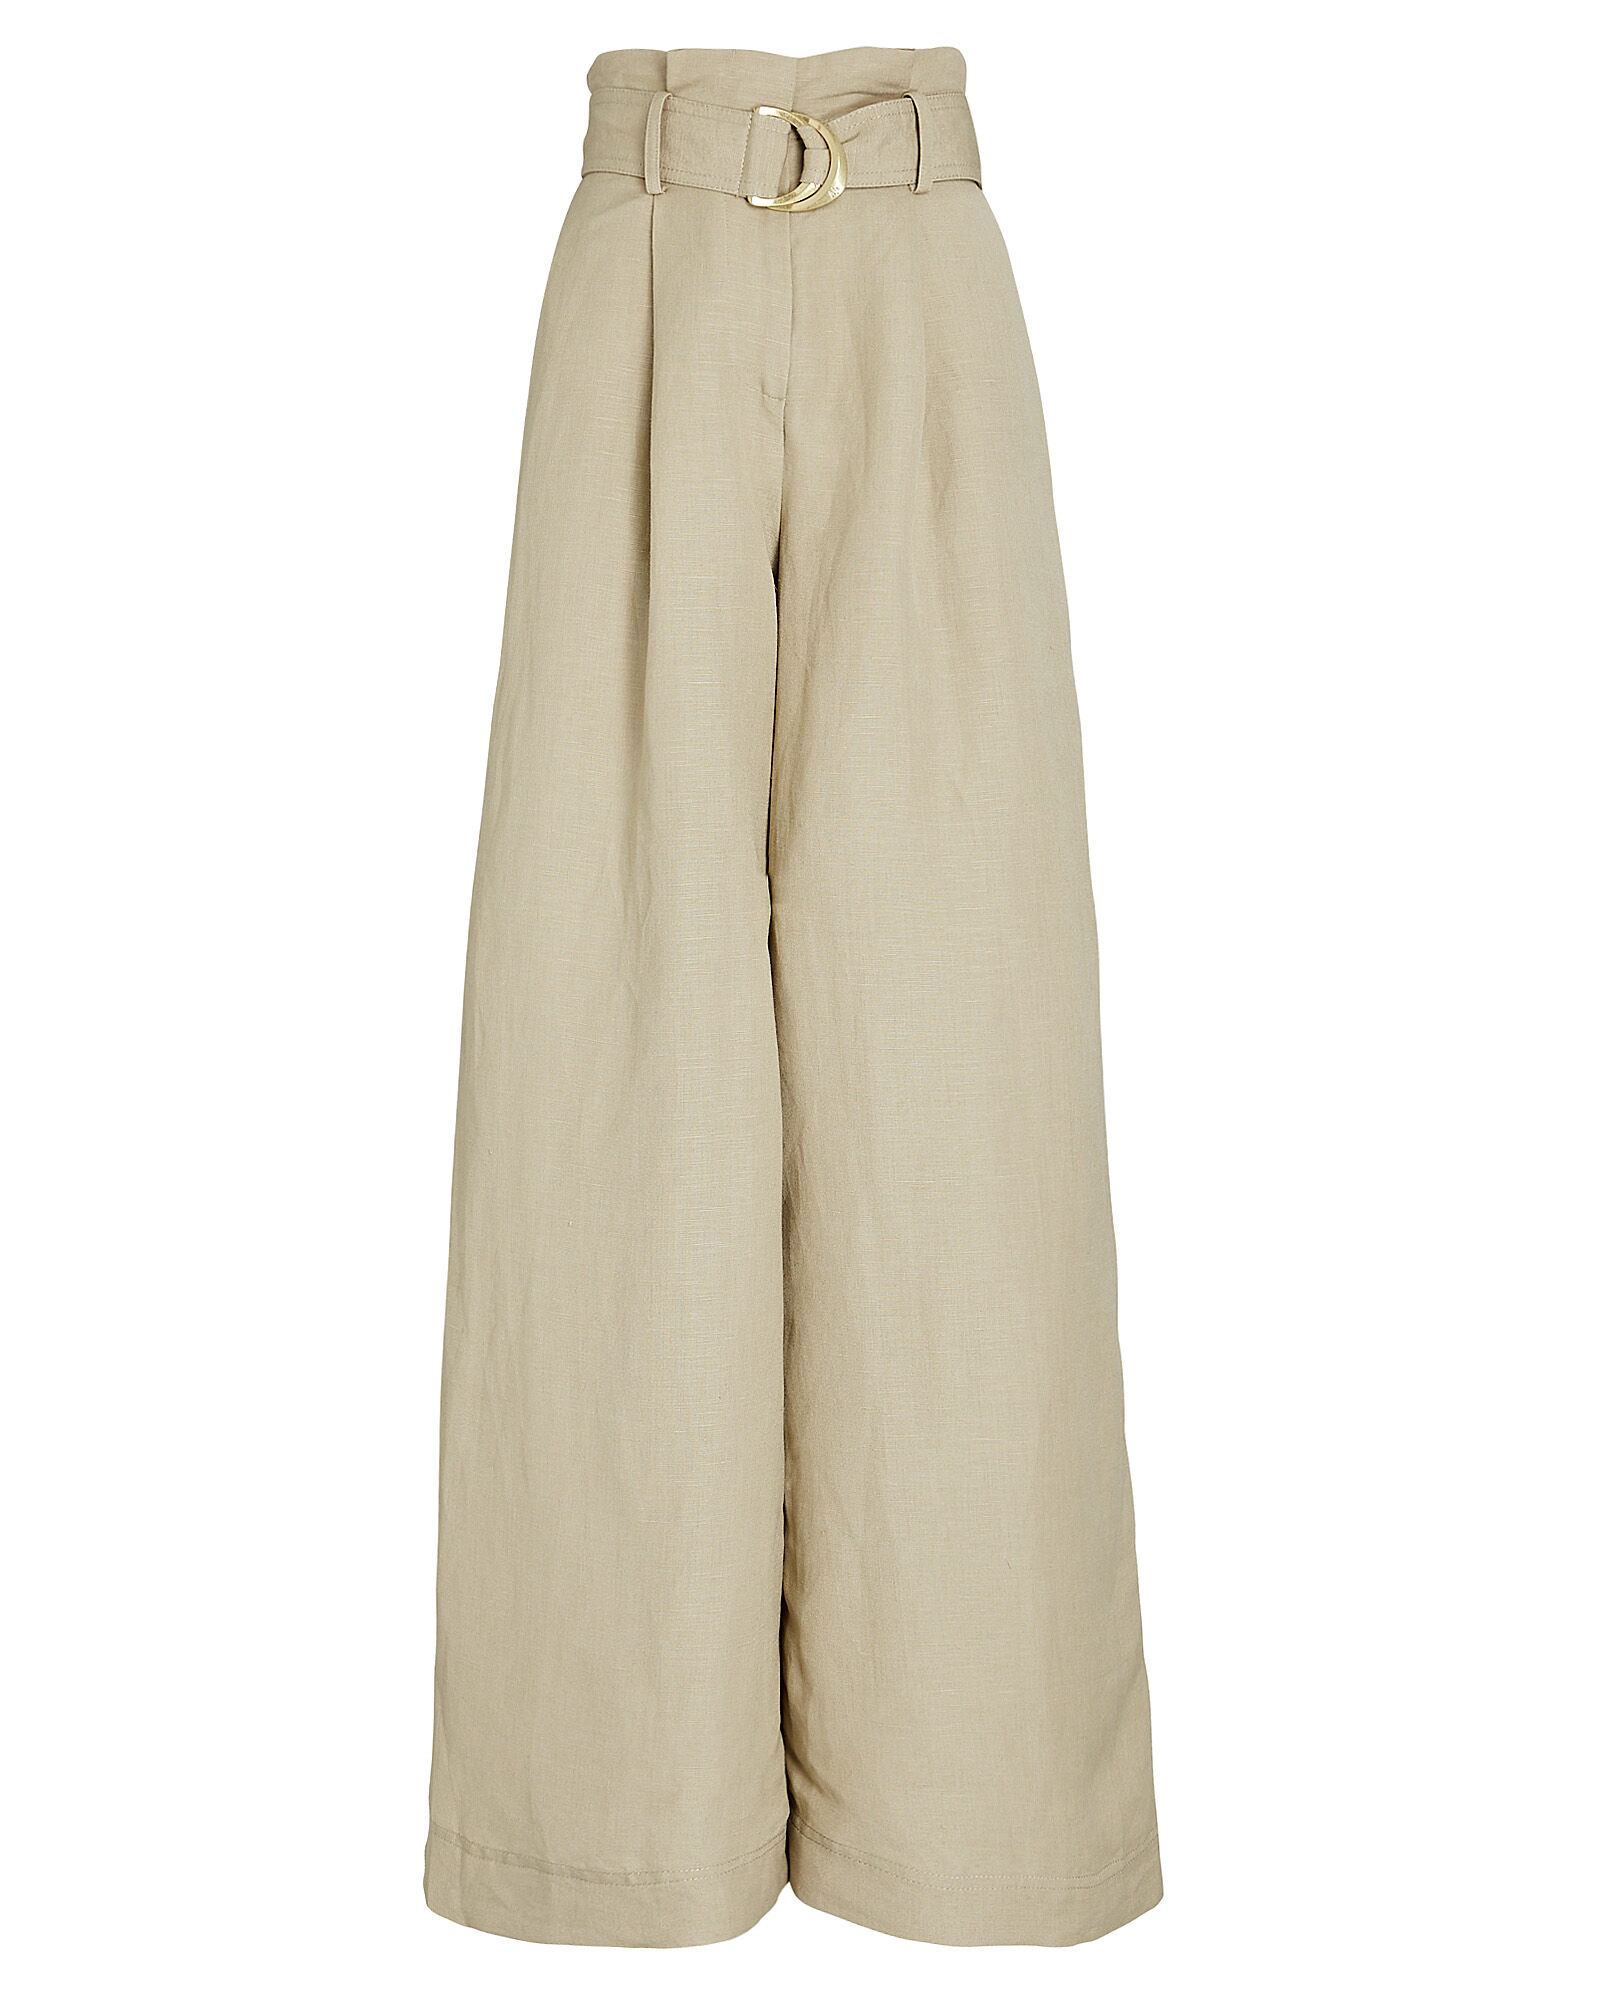 Consonance Wide-Leg Pants, BEIGE, hi-res